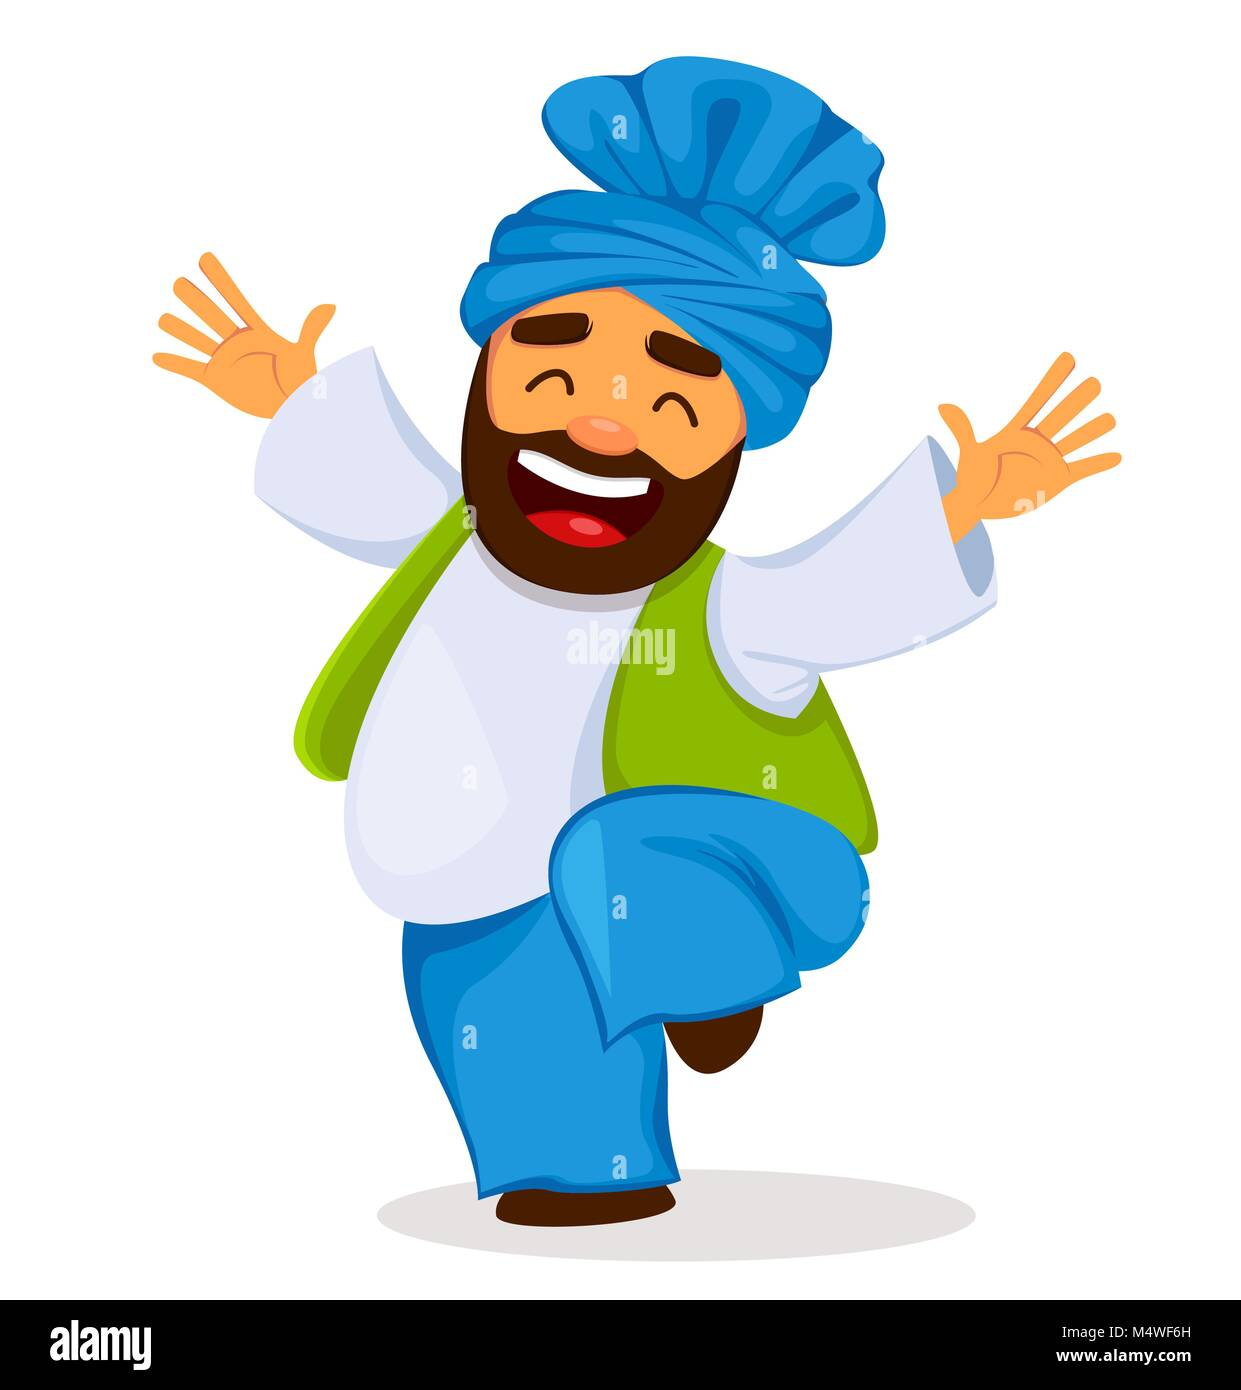 Popular winter Punjabi folk festival Lohri. Funny dancing Sikh man, cartoon character. Vector illustration on white - Stock Vector